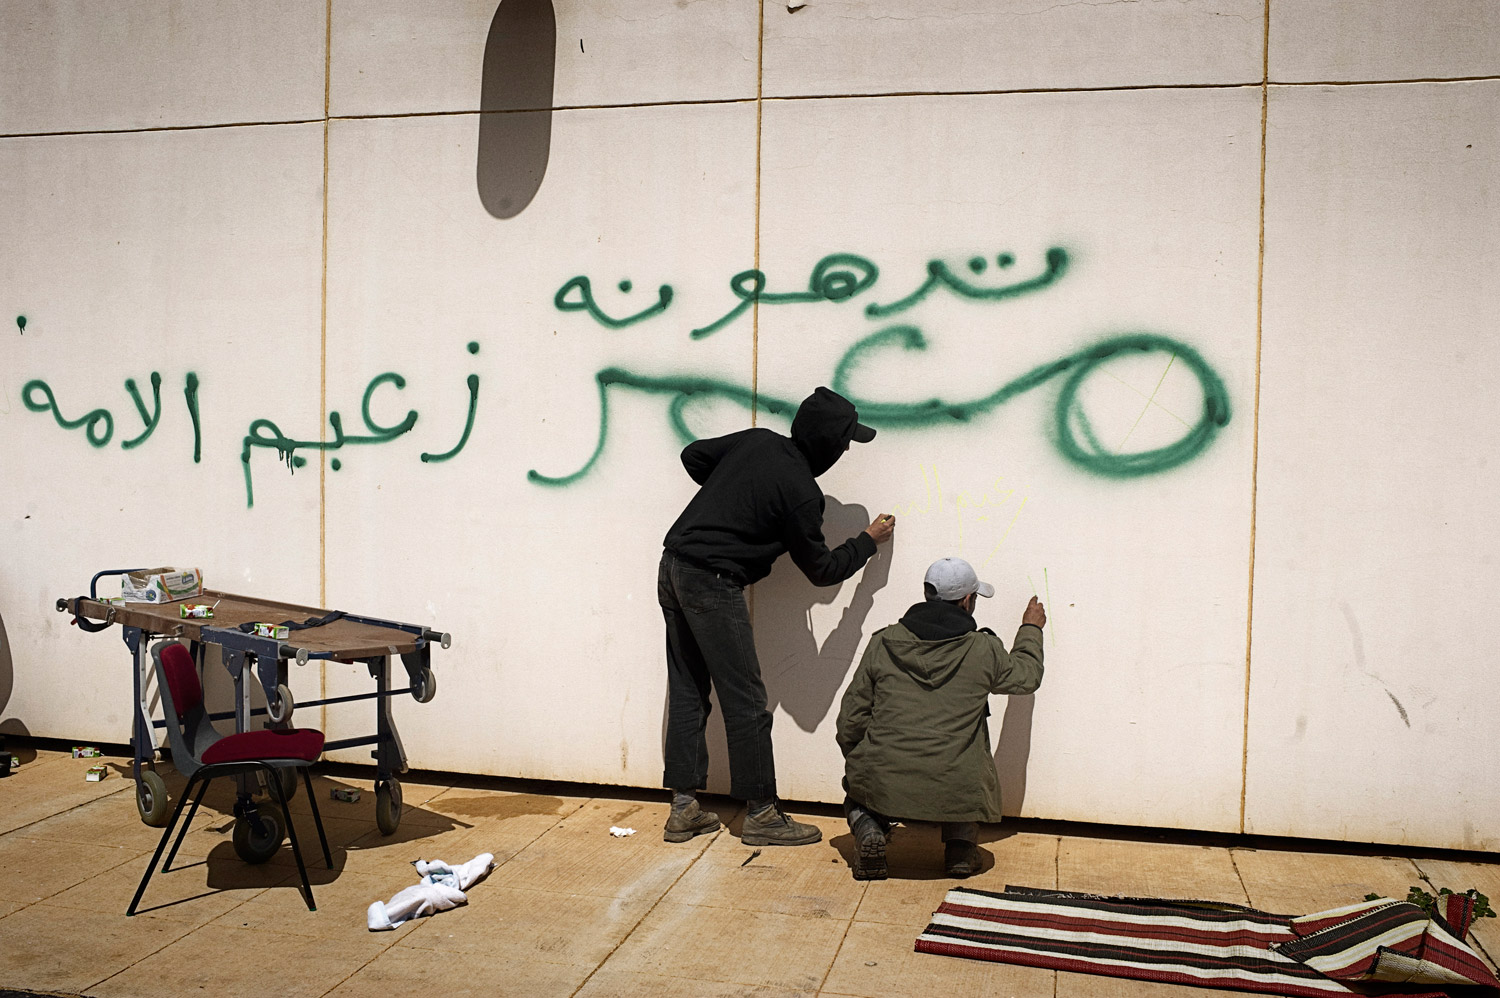 Libyan rebels scrawl graffiti on a wall near a hospital in Ras Lanuf, March 27, 2011. The wall was previously defaced, in green, by Gaddafi troops.